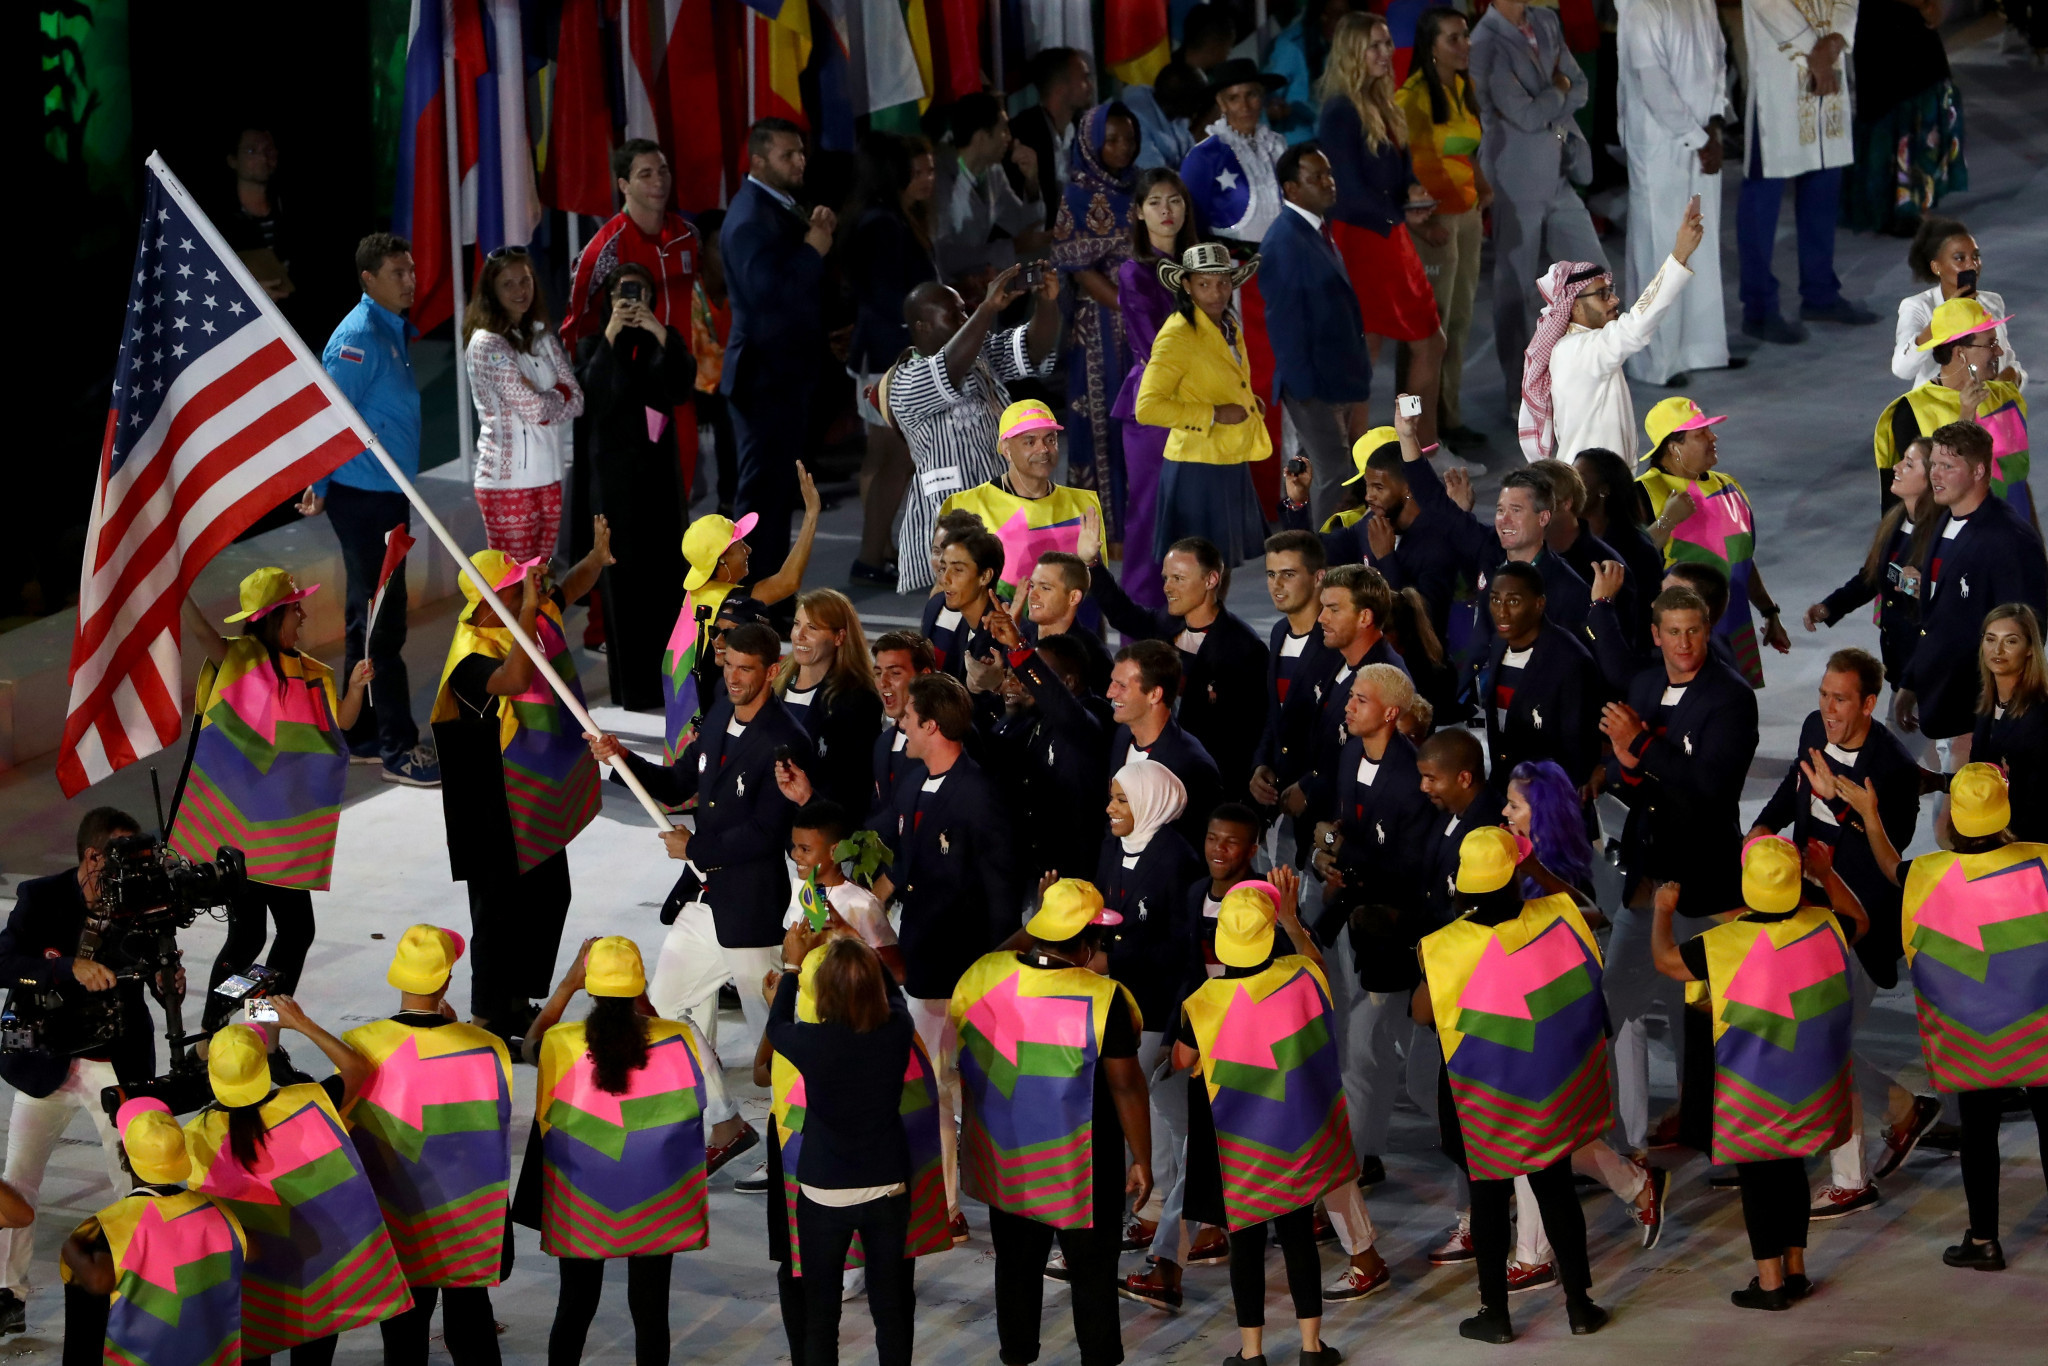 France, United States and Refugee team given prominent slots in Tokyo 2020 parade